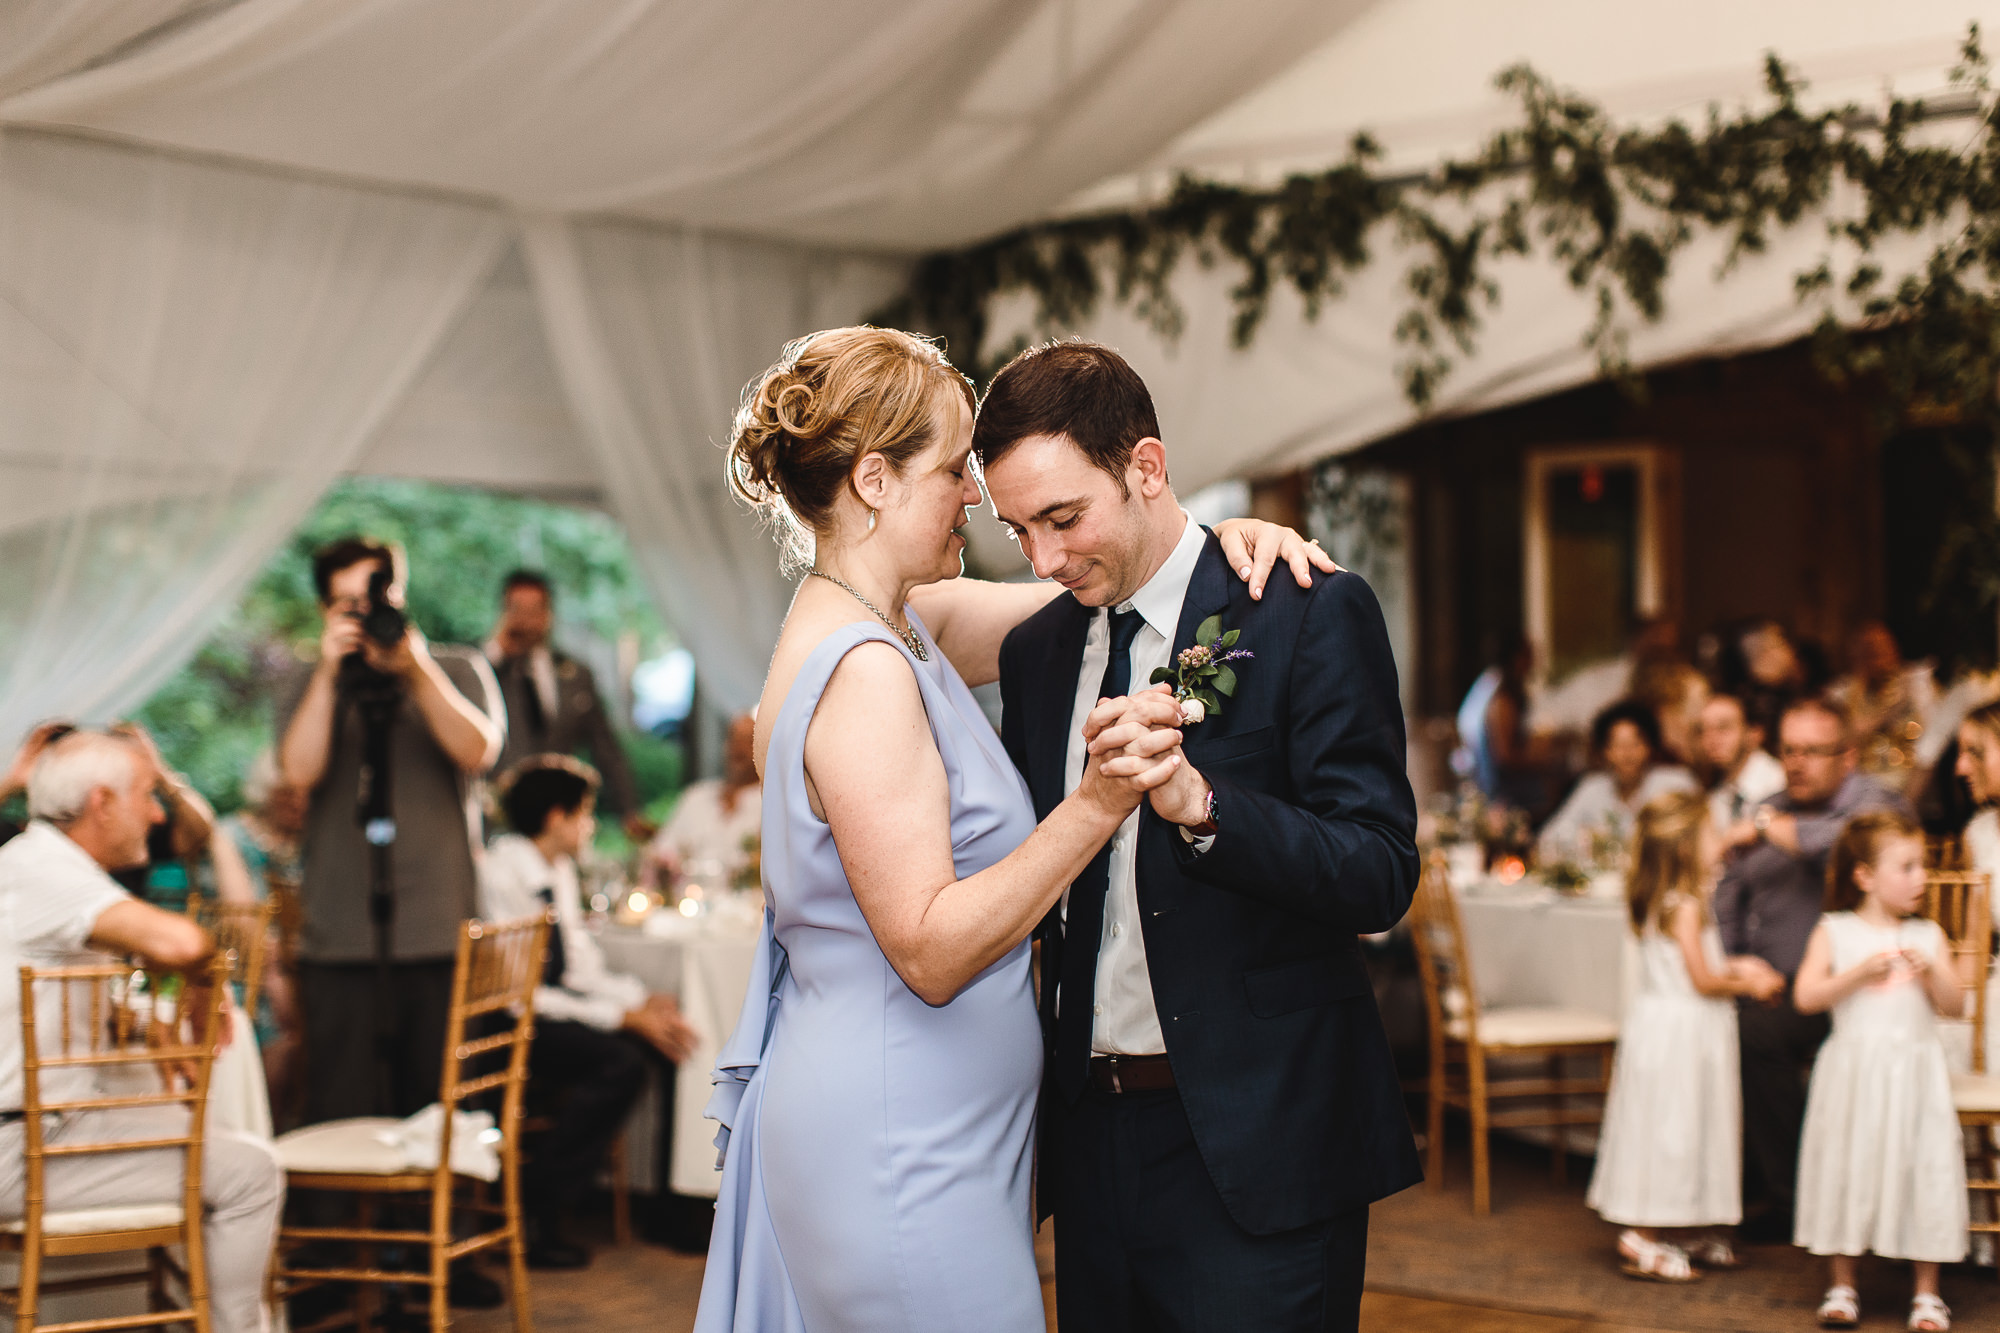 connecticut-summer-lake-wedding-emily-kirke-photography-upstyle (149 of 181).jpg